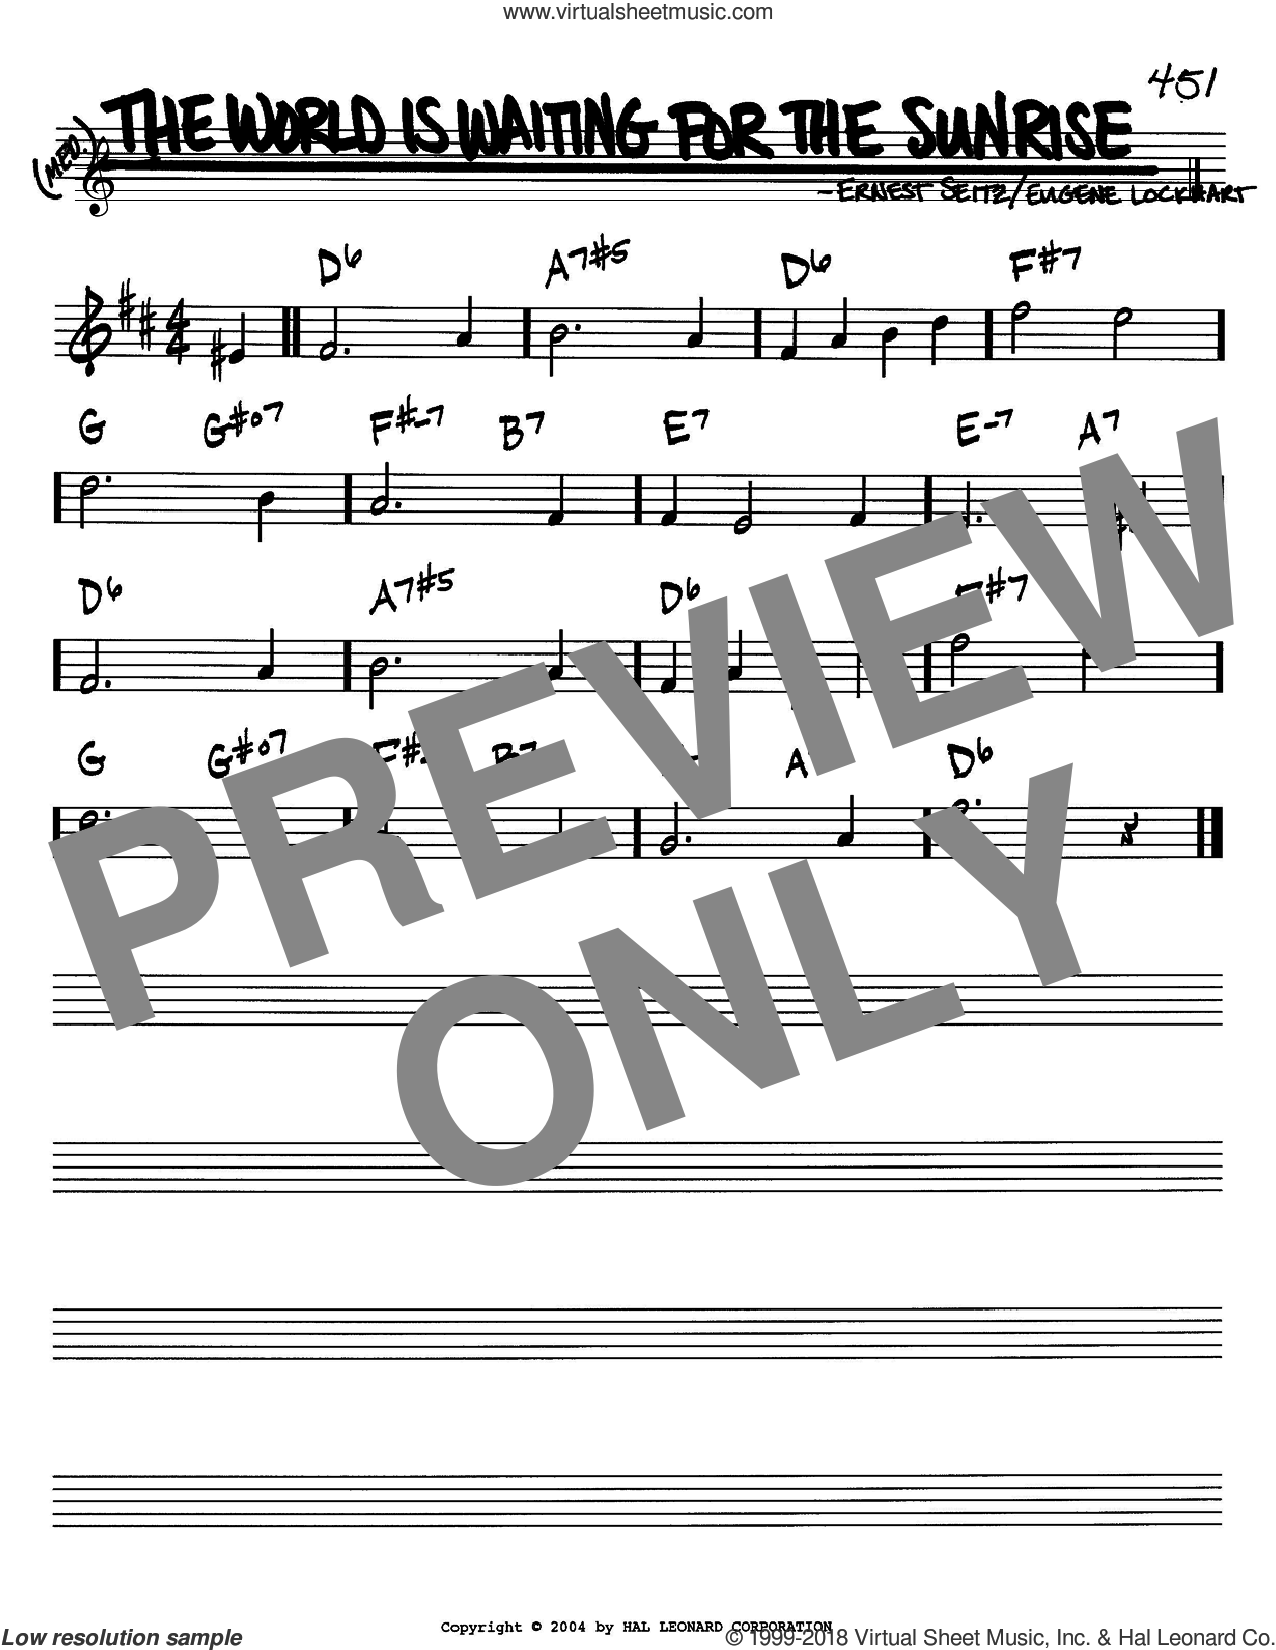 The World Is Waiting For The Sunrise sheet music for voice and other instruments (Bb) by Ernest Seitz